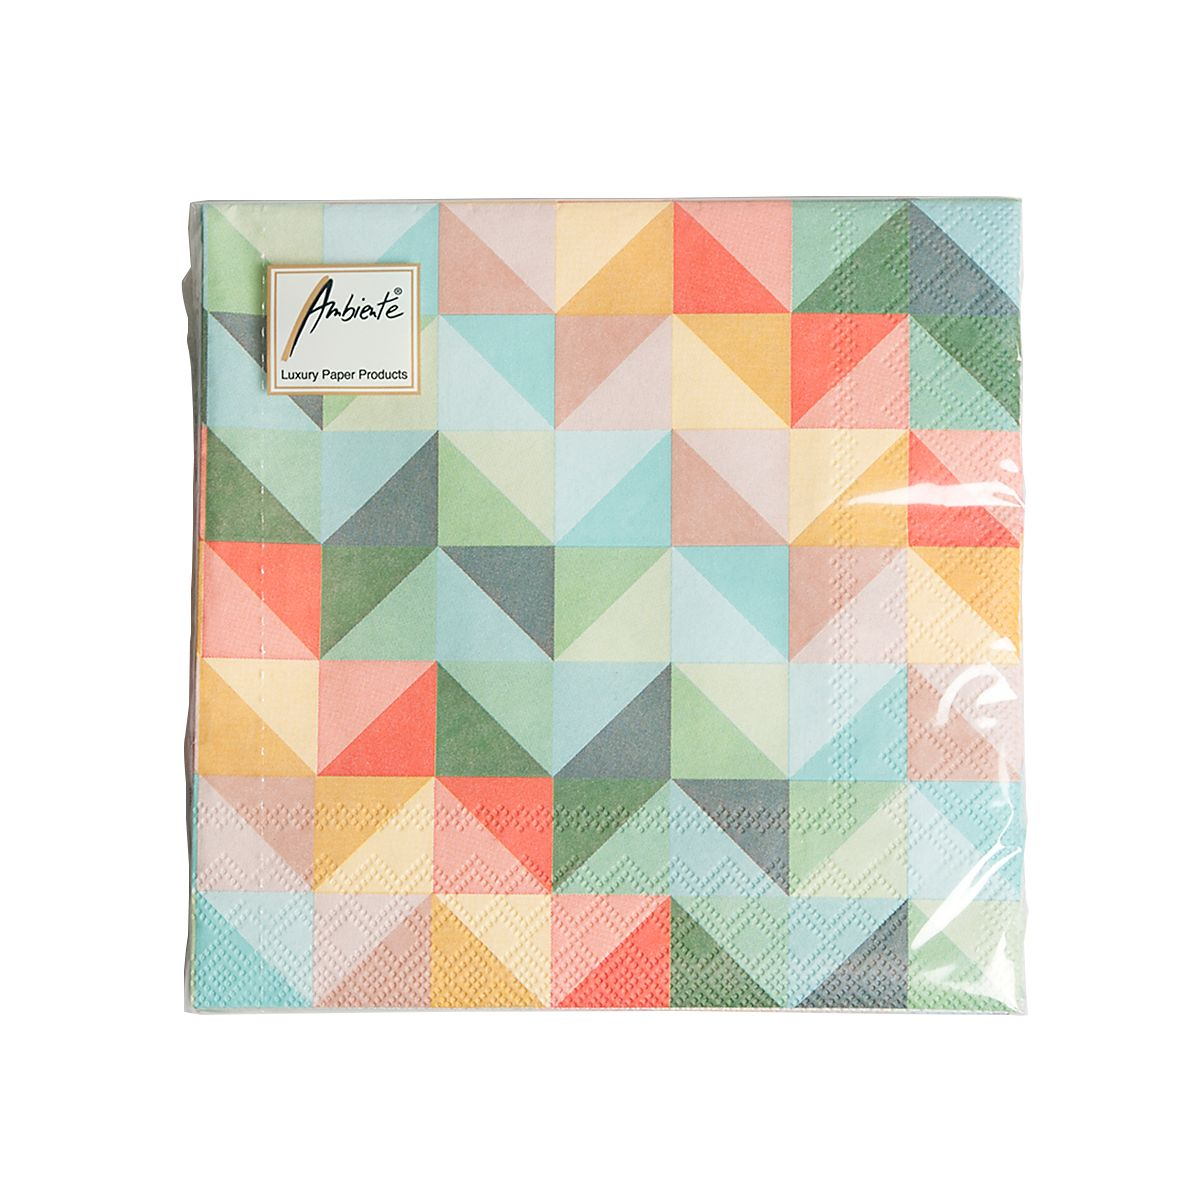 Serviettes De Table Papier Motif De Triangles De Couleur 20pcs Dille Kamille Une F Te